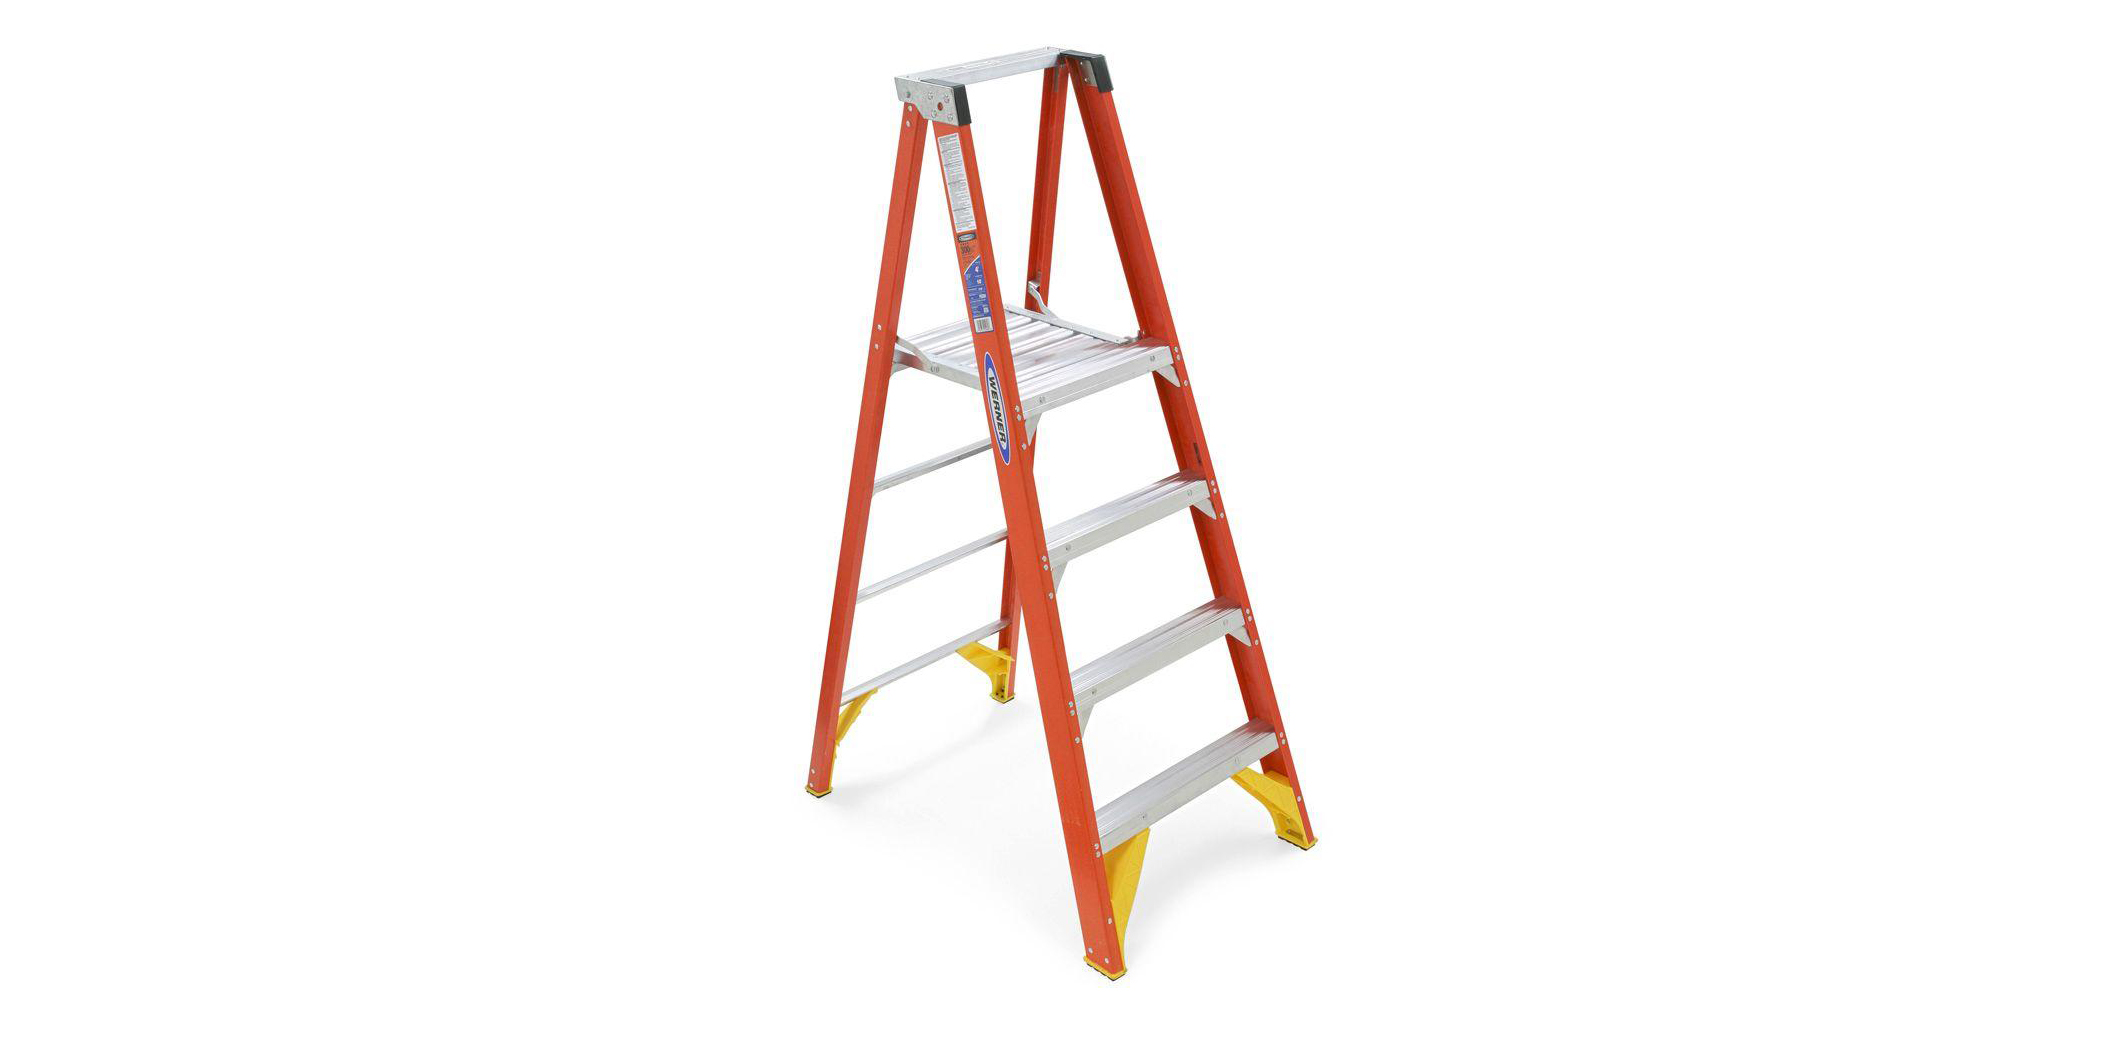 Home Depot S 1 Day Ladder Sale Starts At 15 Werner Rubbermaid More 9to5toys